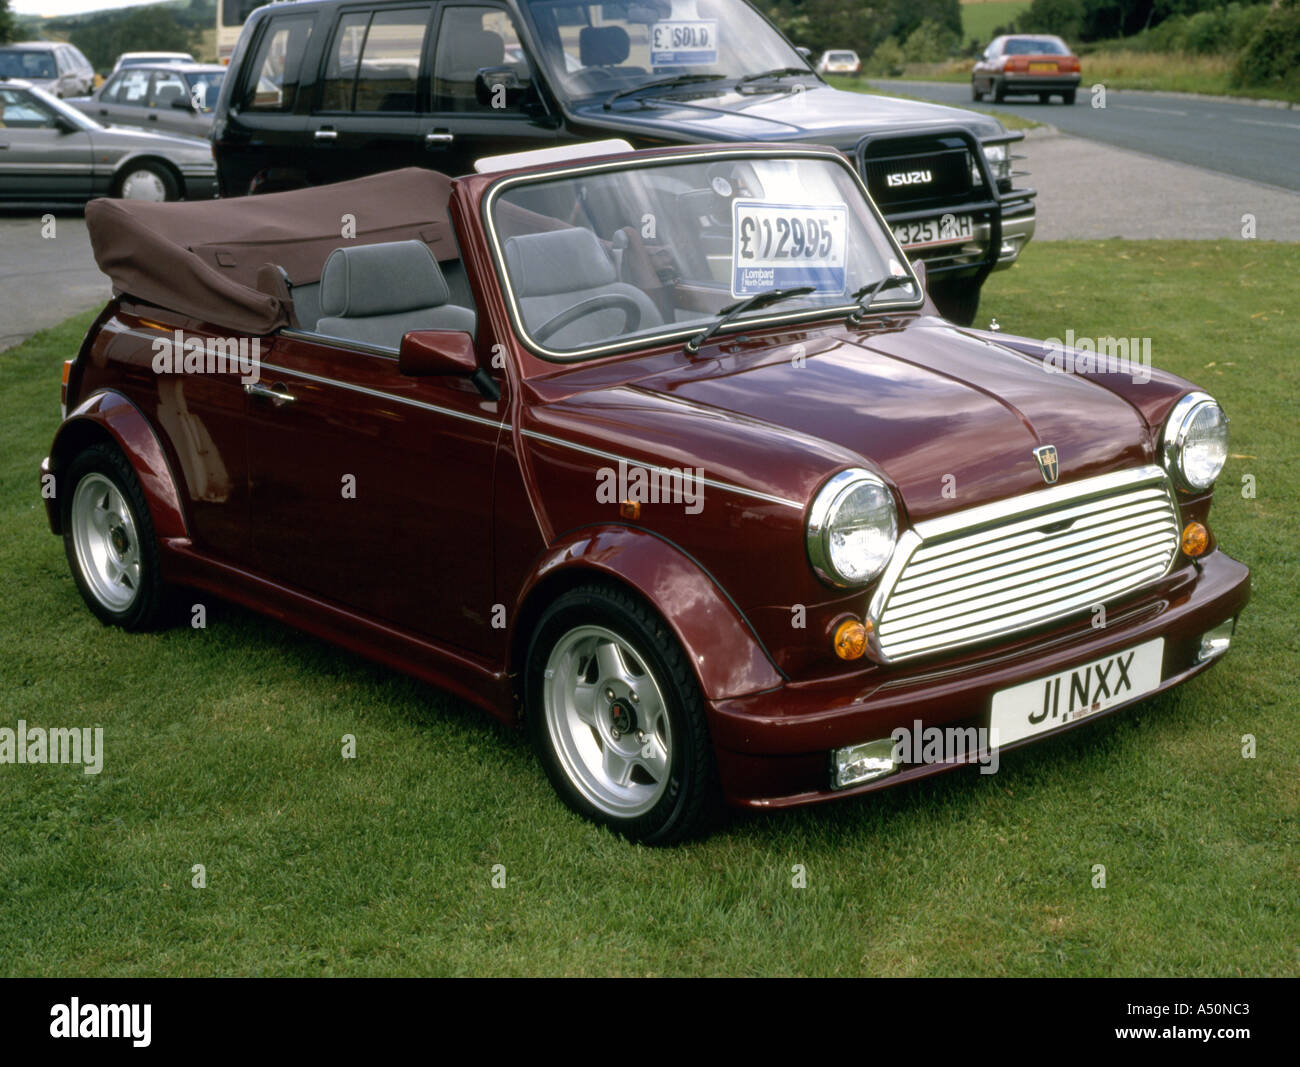 Cabriolet Style Classic Mini From Rover About 1990 Stock Photo